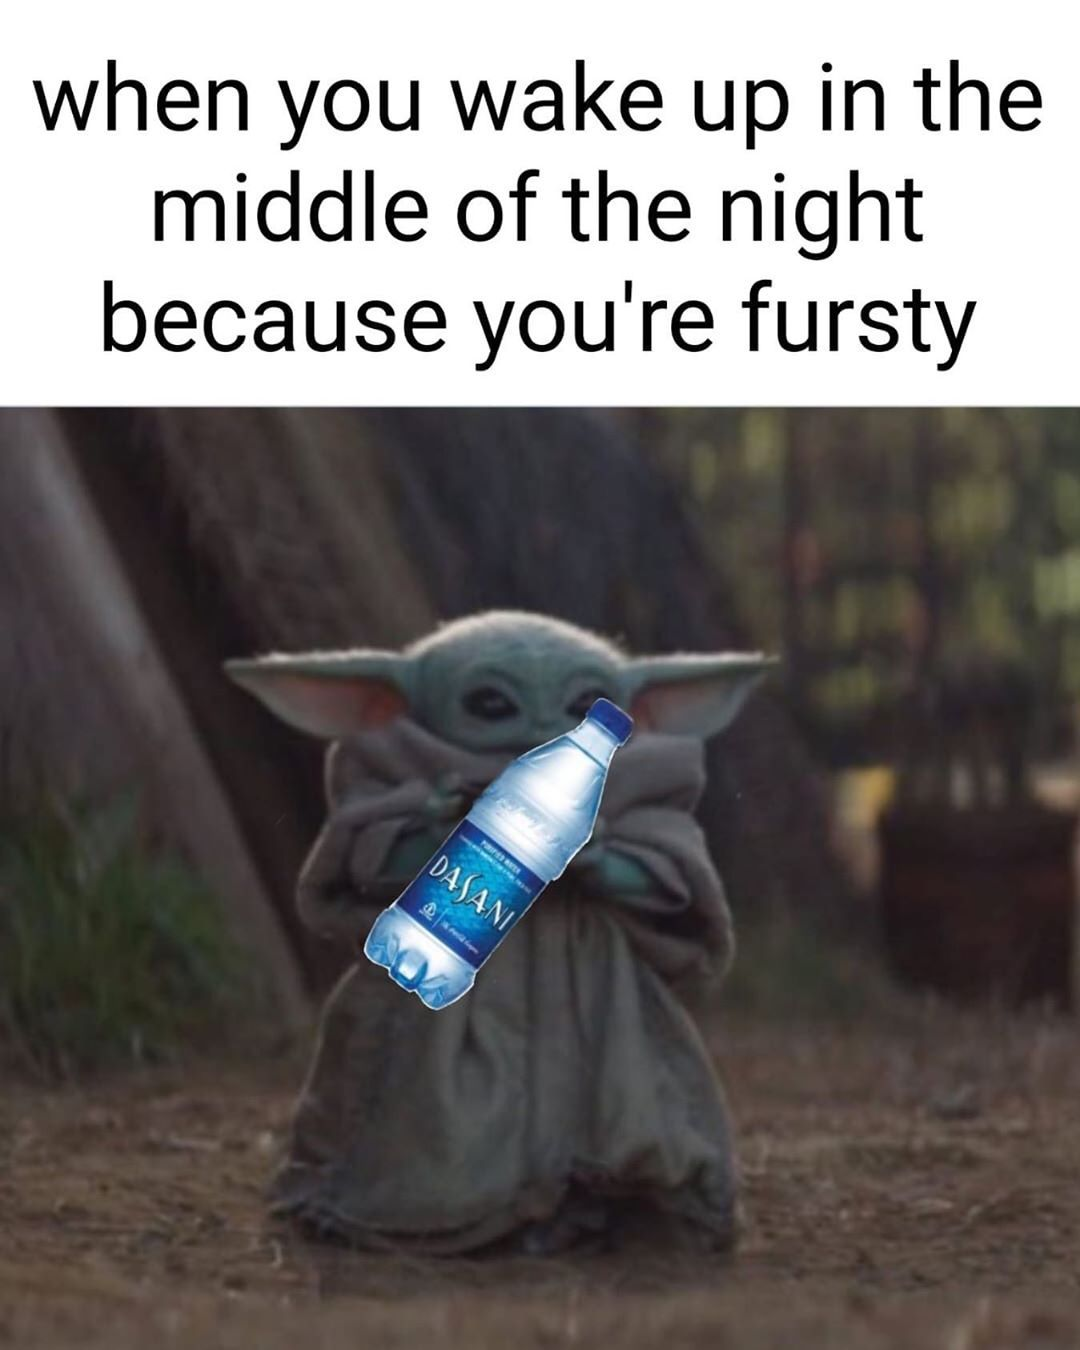 Instagram Post By Baby Yoda It Memes Feb 7 2020 At 6 47am Utc